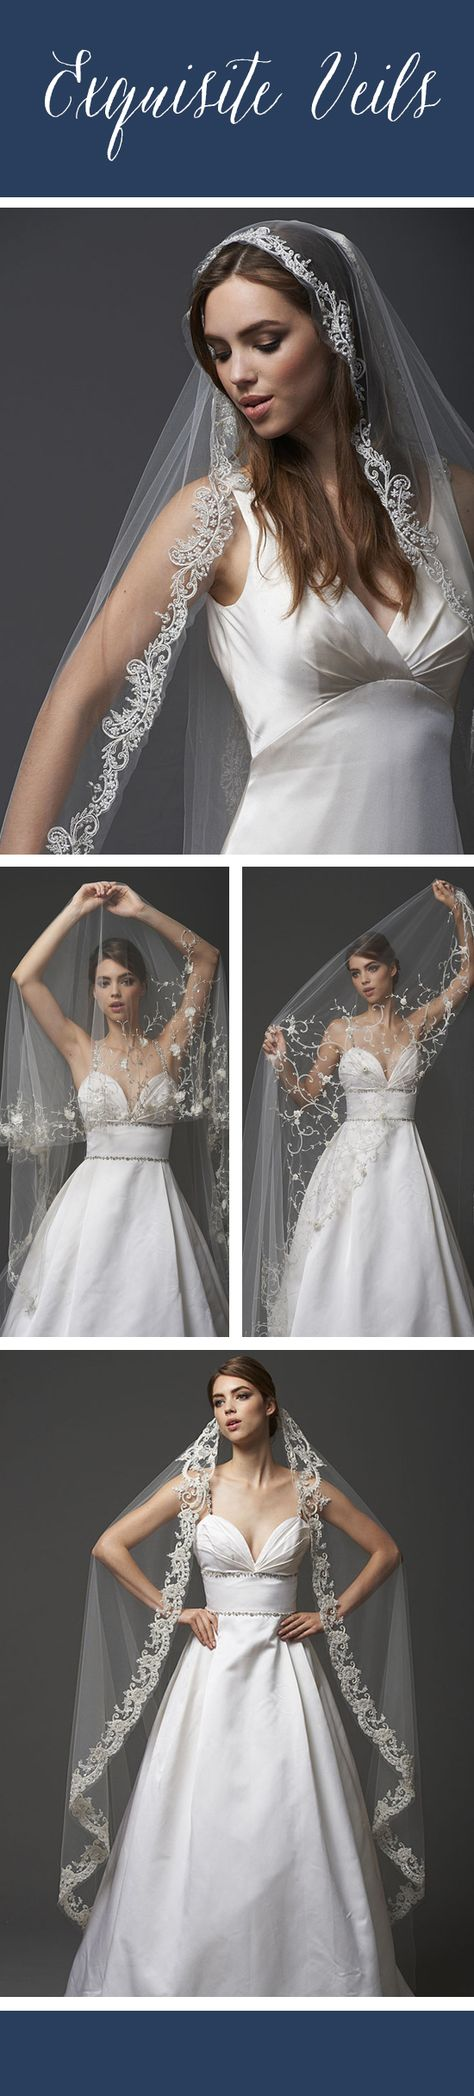 Check out these gorgeous veils and accessories by @blossomveils! We're obsessed! #weddingveils